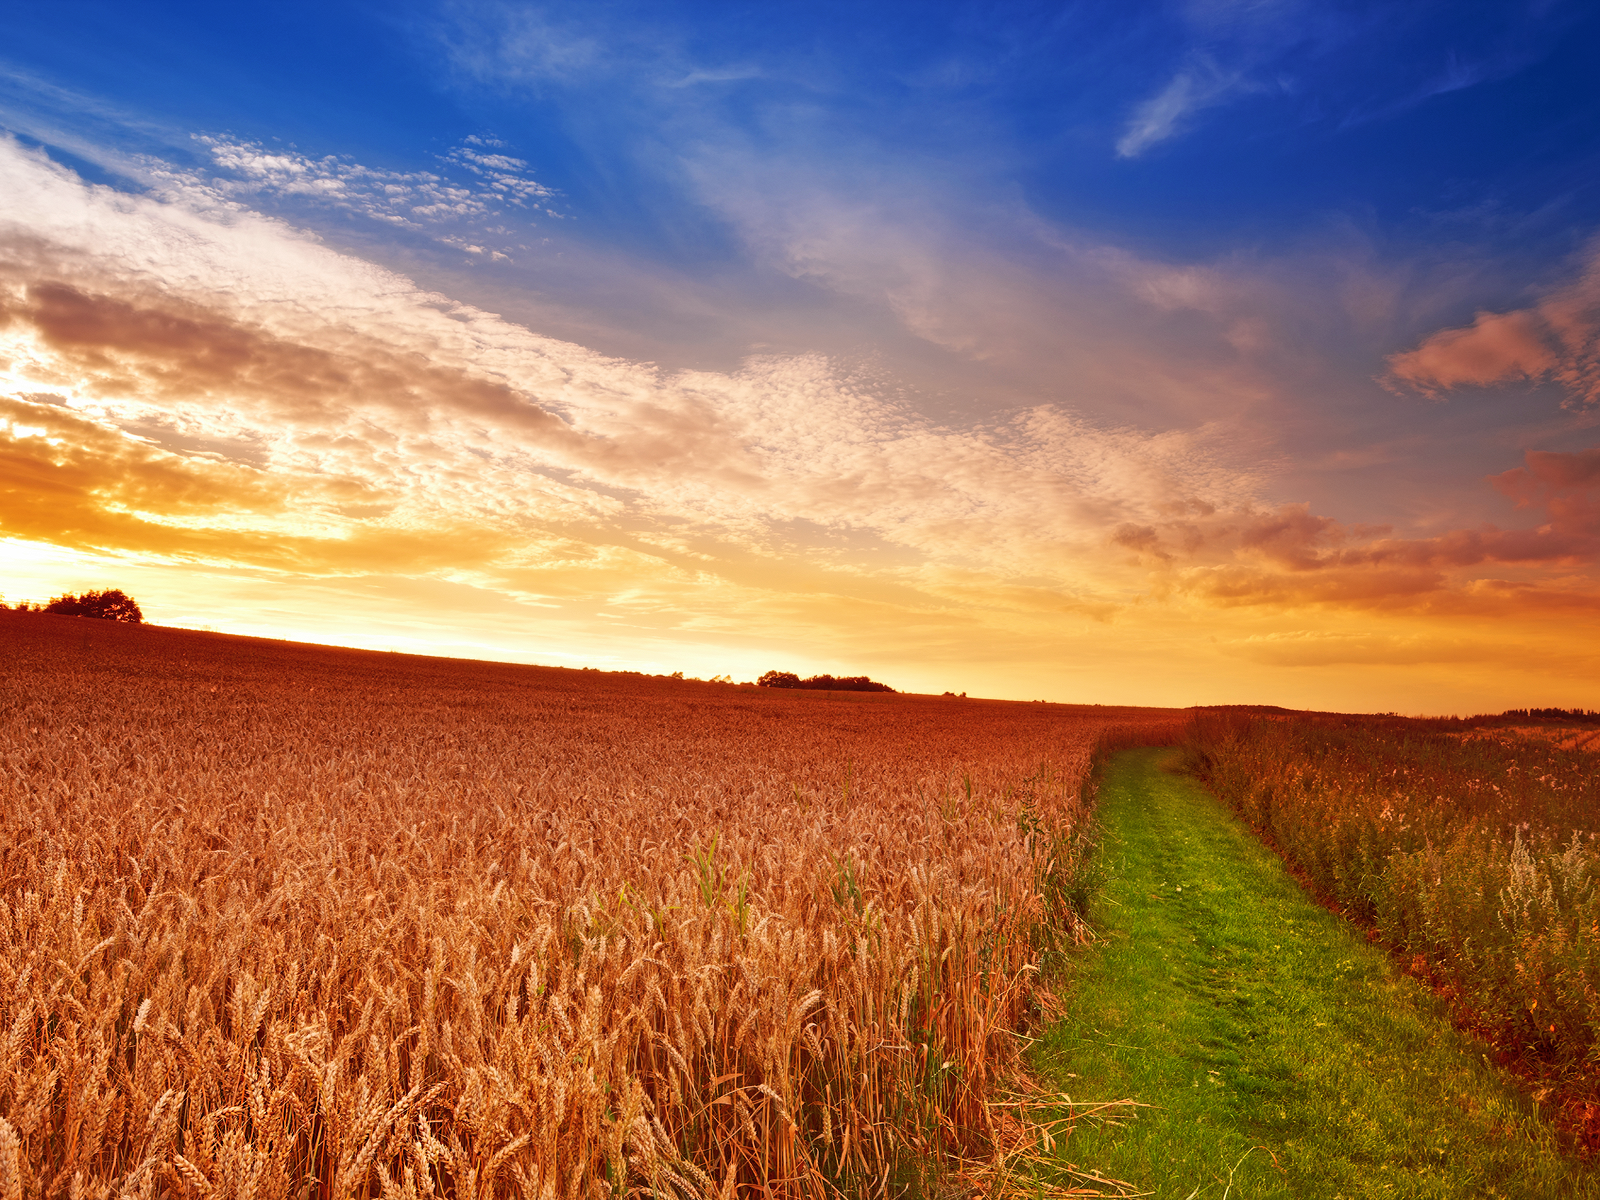 Farm Country Field wallpaper Conservatives Weave a 1600x1200